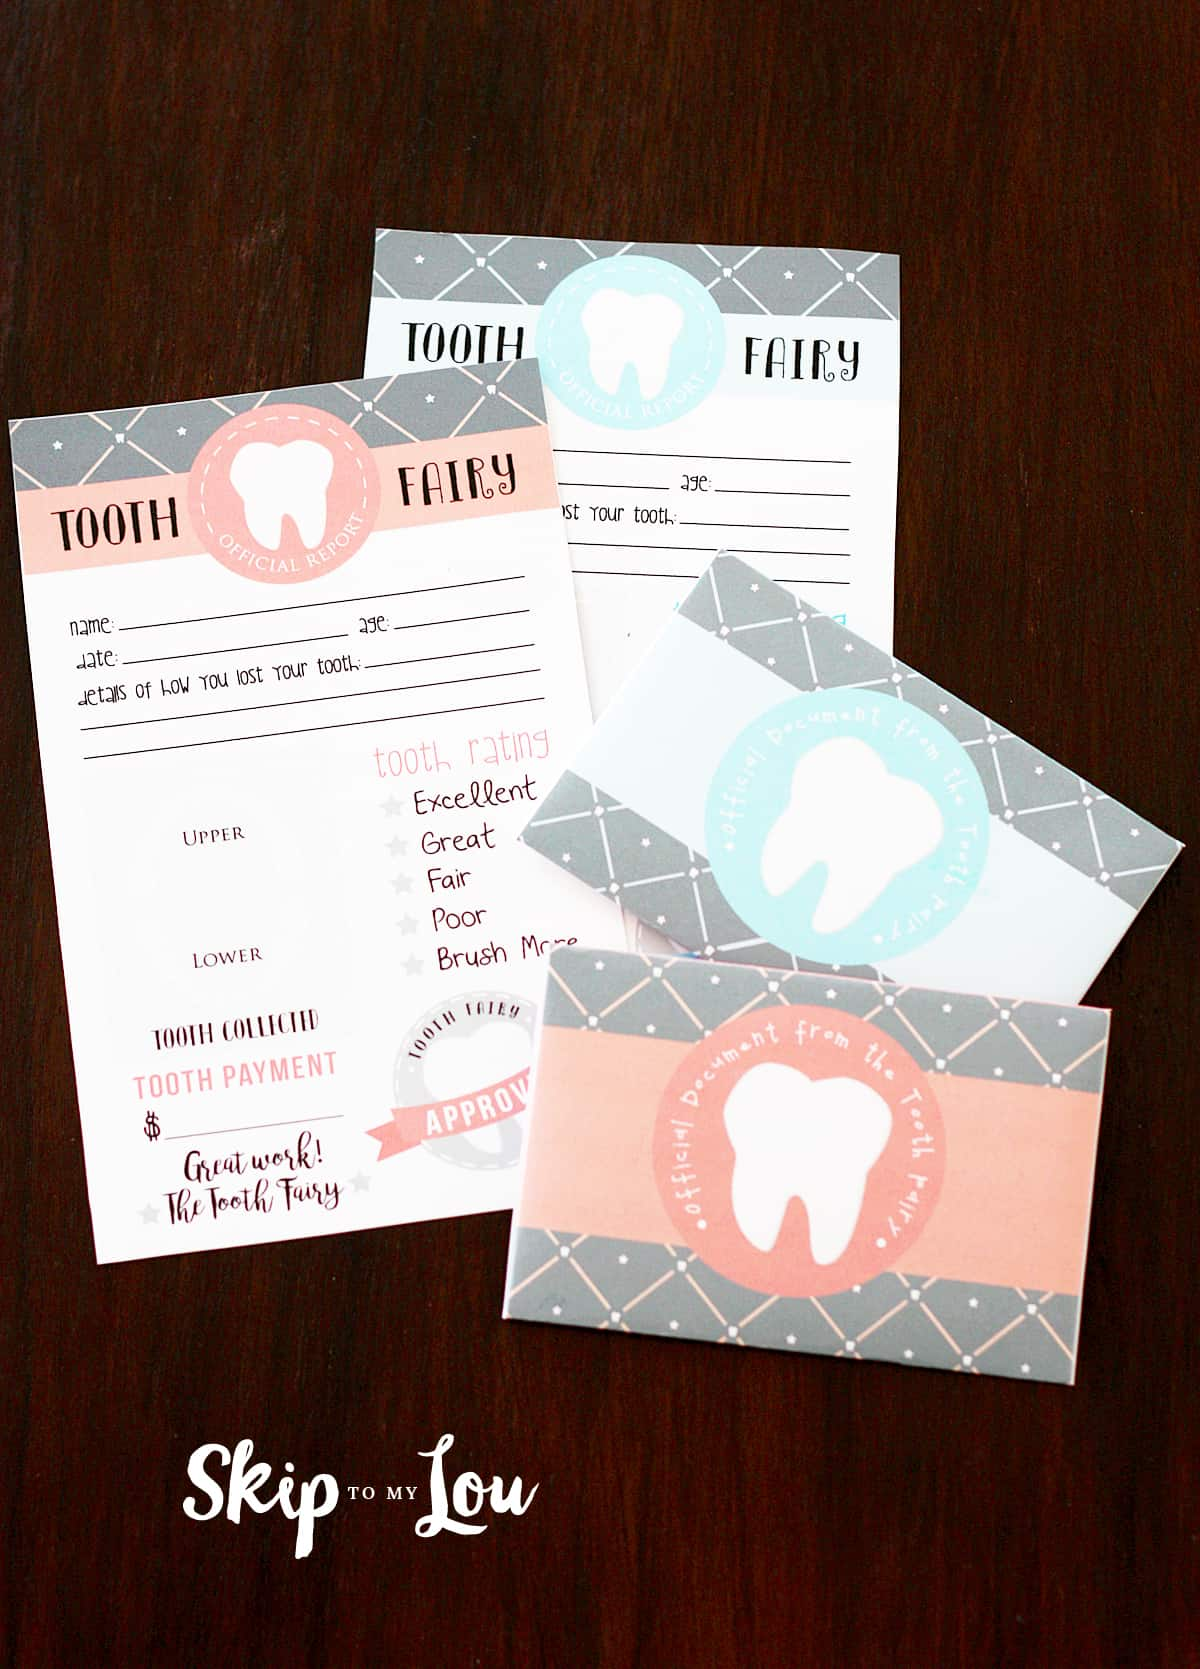 photo about Free Printable Tooth Fairy Letter and Envelope named Totally free Printable Teeth Fairy Letter with matching enevelopes